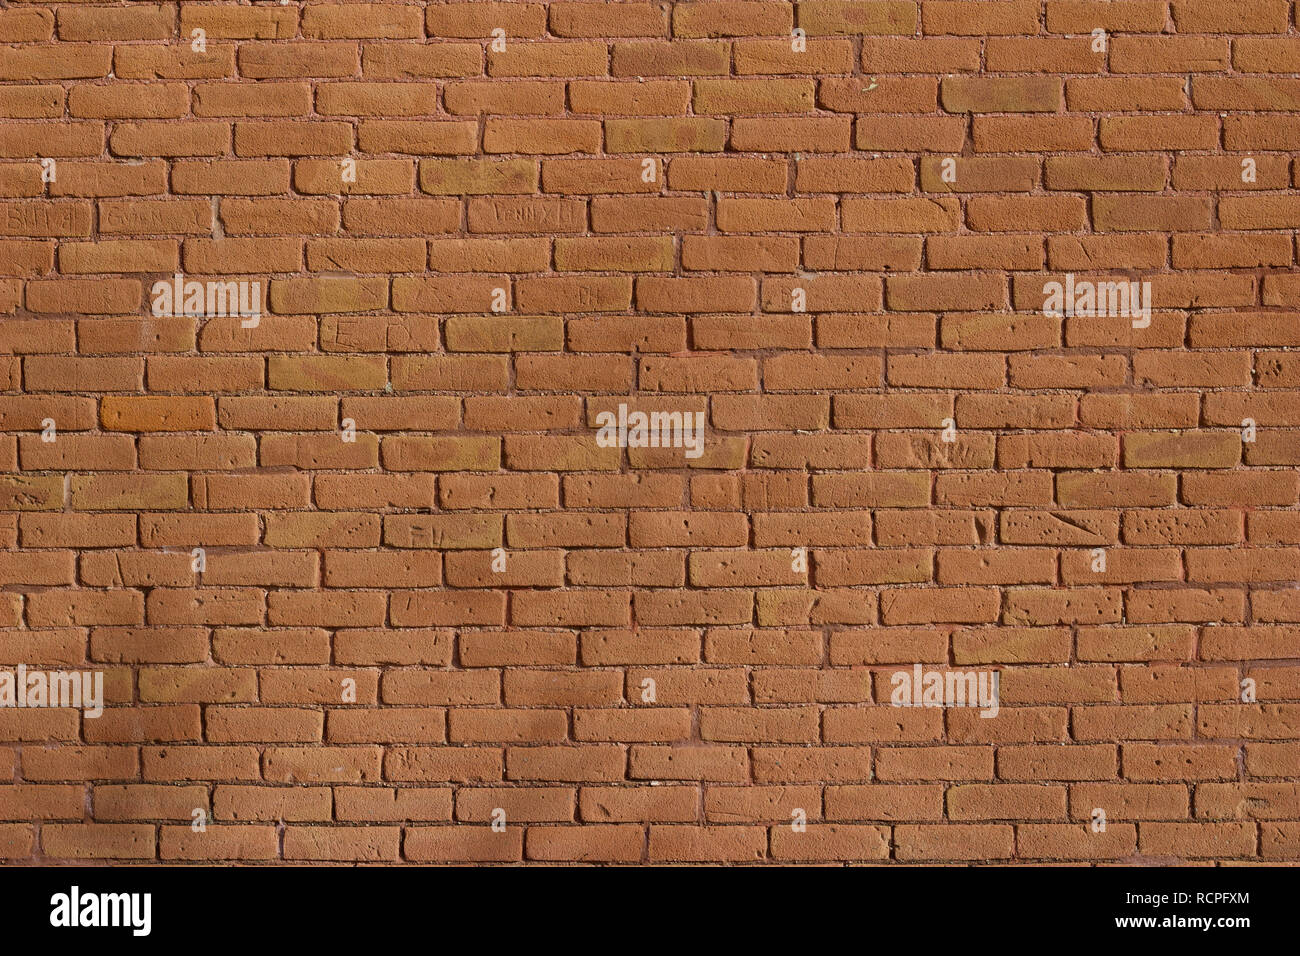 Antique weathered brick wall background abstract with deteriorating red clay bricks in traditional running bond pattern Stock Photo